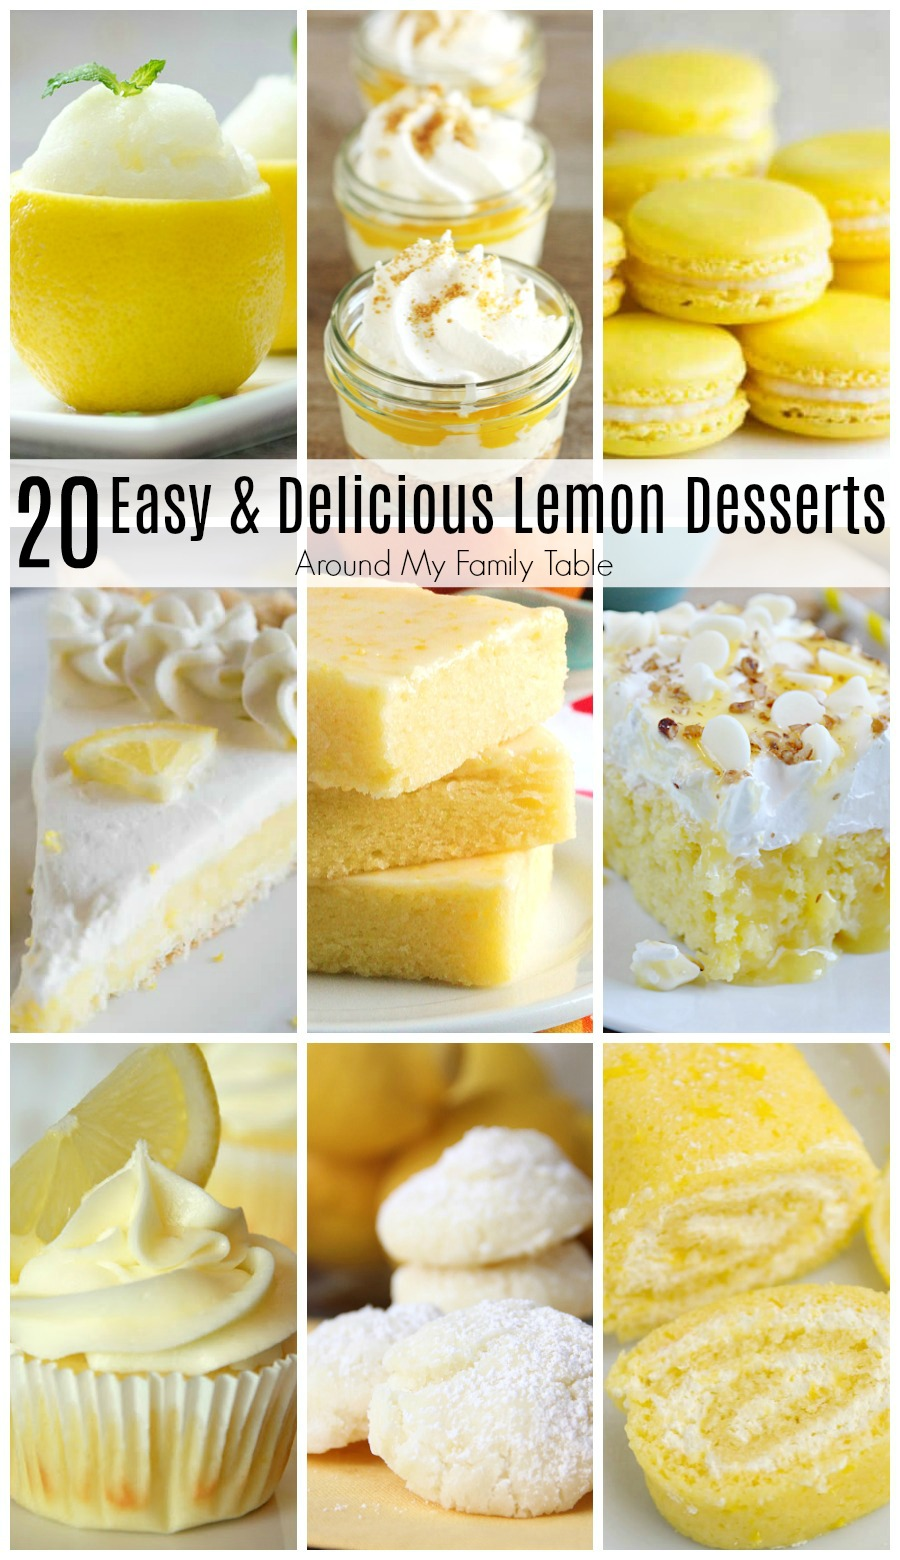 You know you want to try one of these 20 Easy and Delicious Lemon Desserts...they are totally worth the pucker!